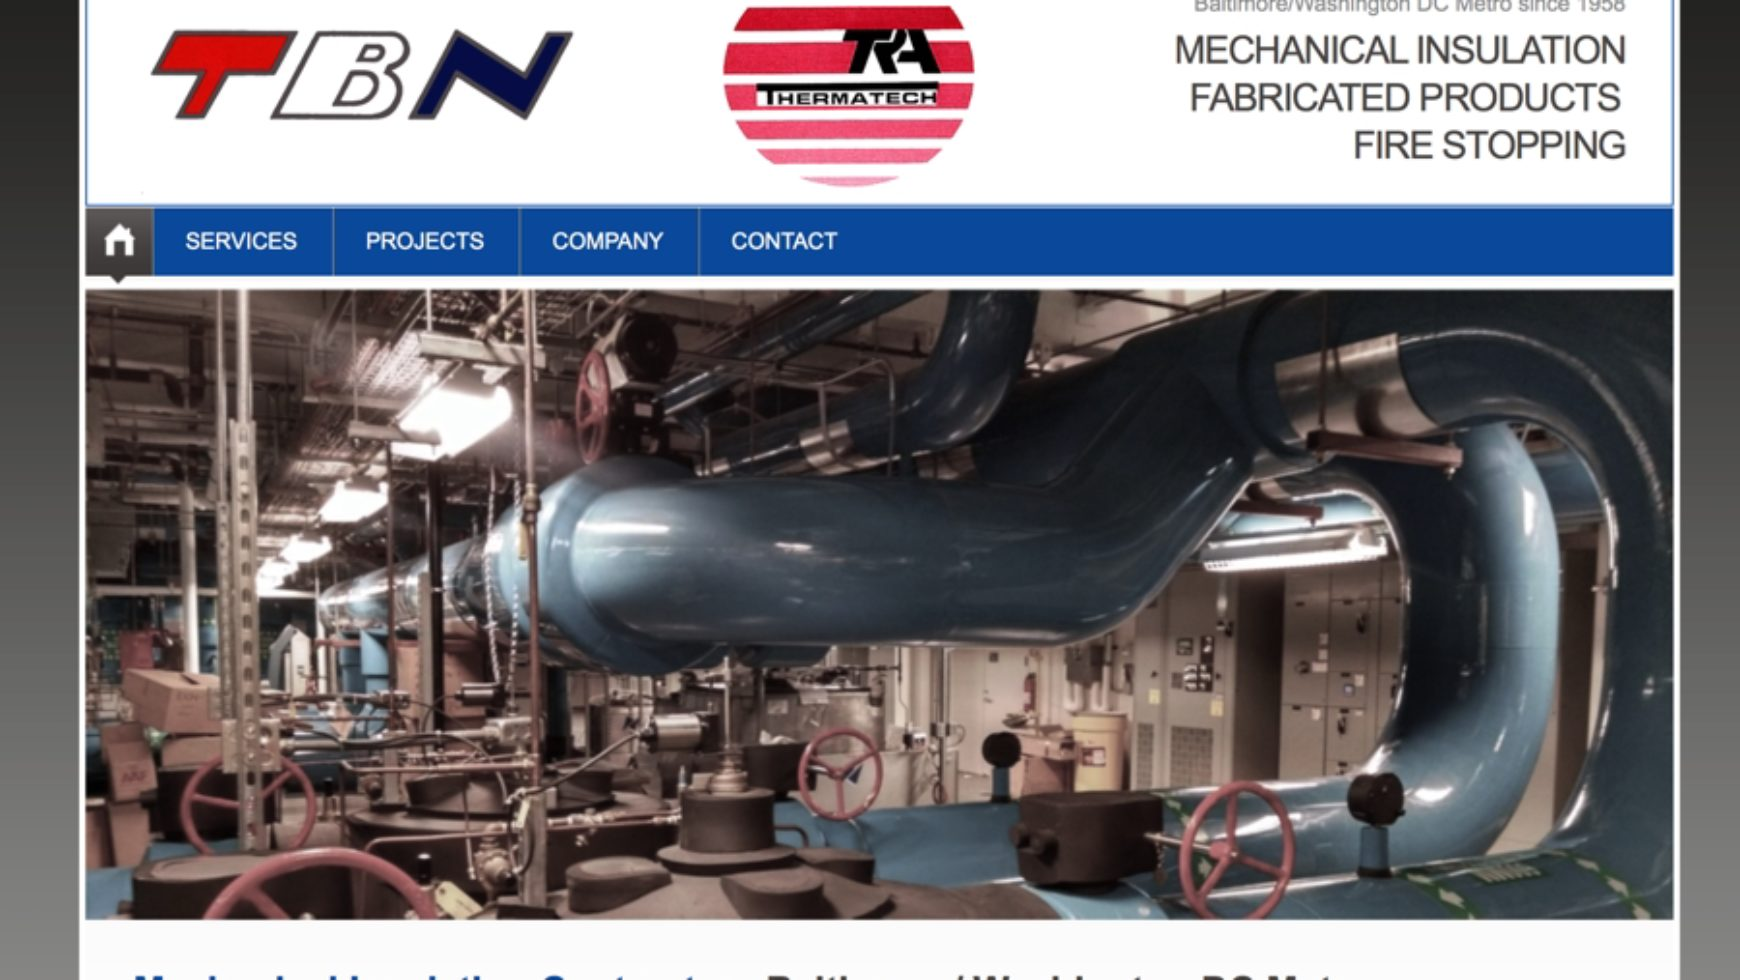 TBN/TRA Thermatech – Fabricated Products Website